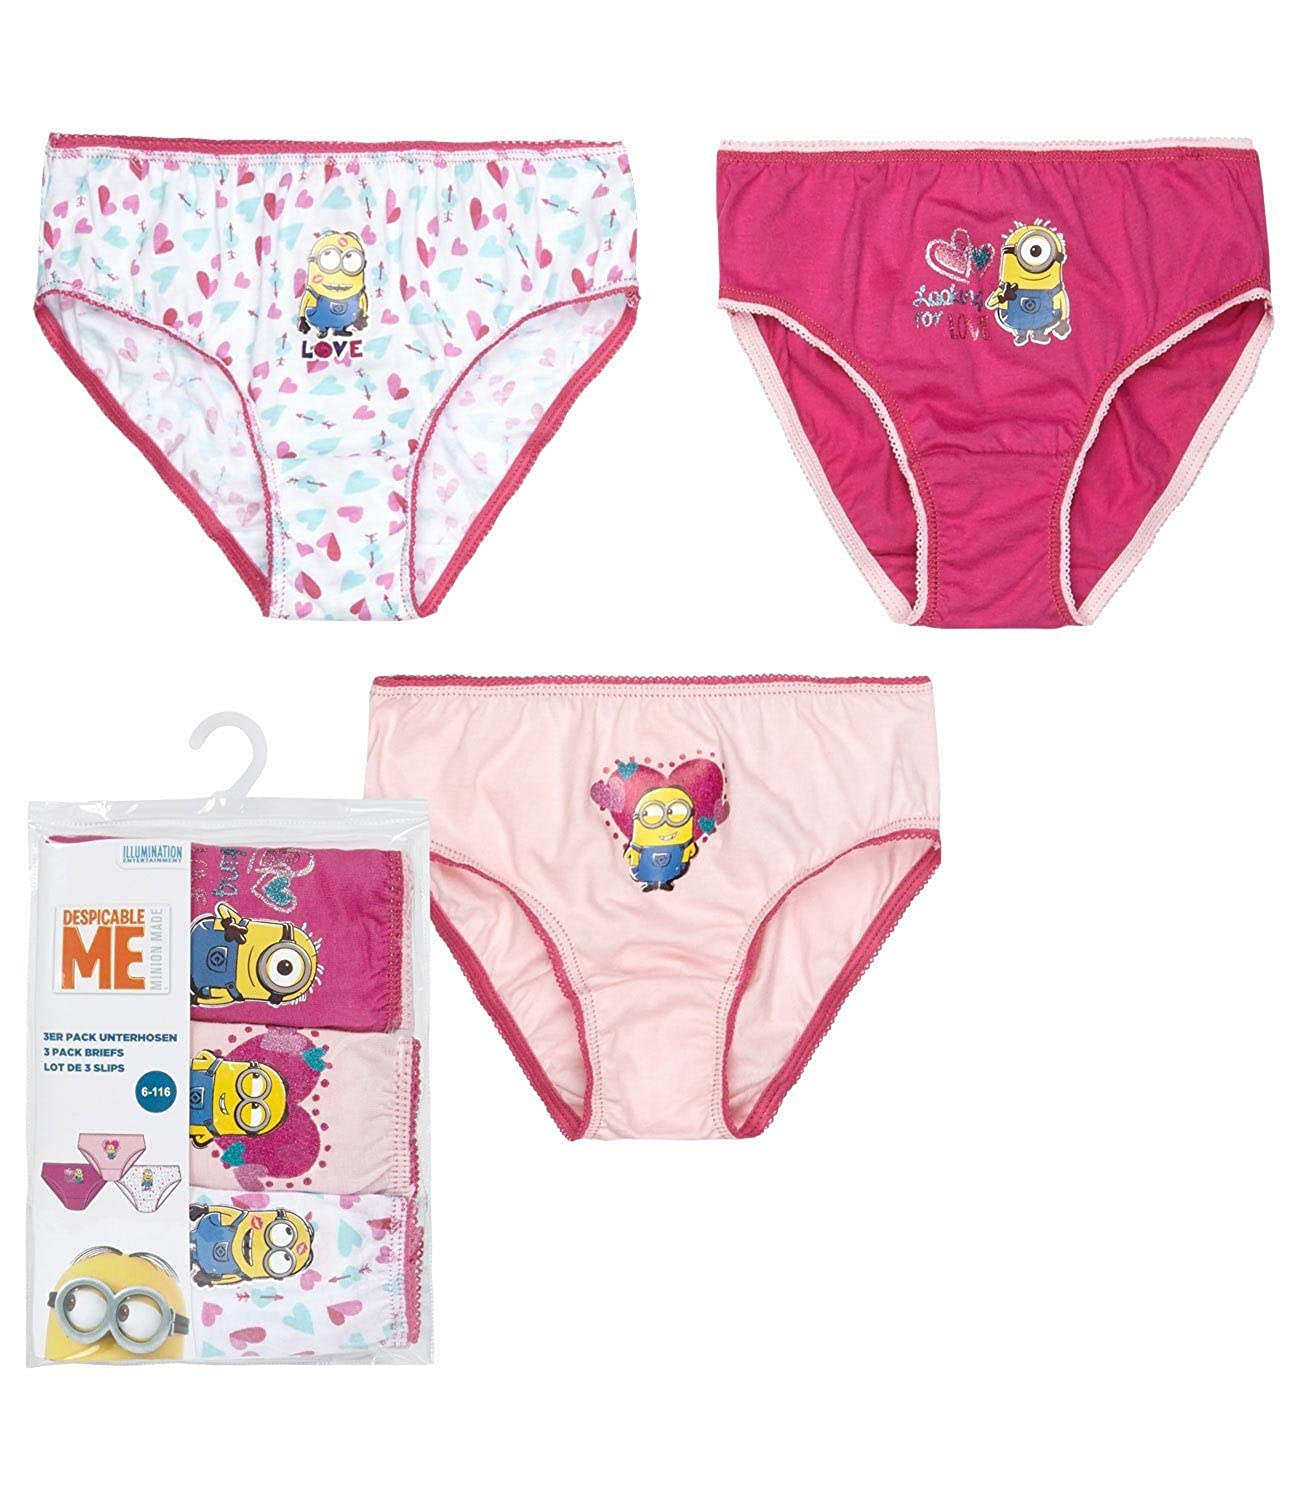 Minions Despicable Me Girls 3 pack brief - fuchsia